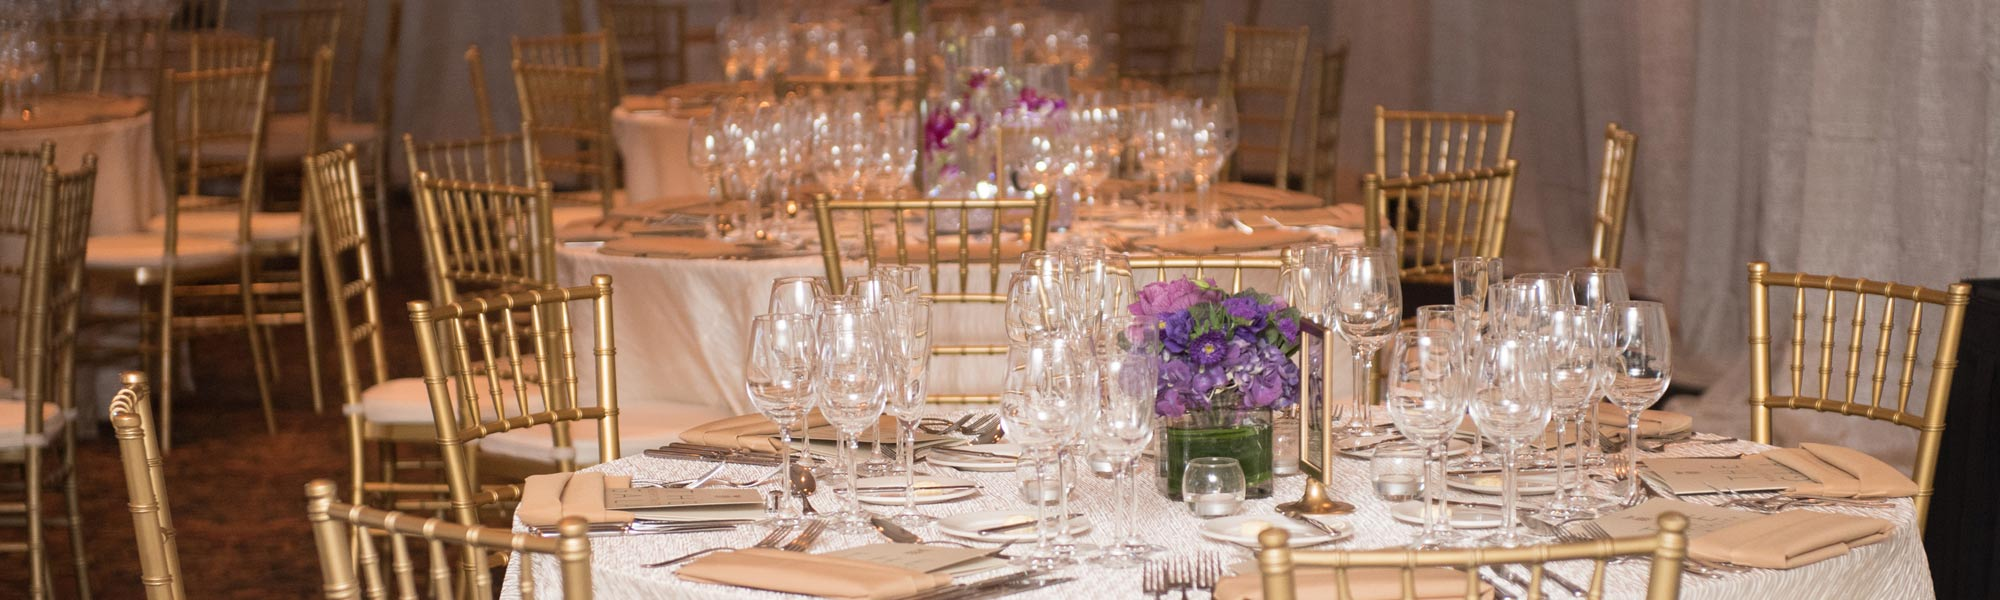 Photo from the 2016 Hospitality Gala table settings.